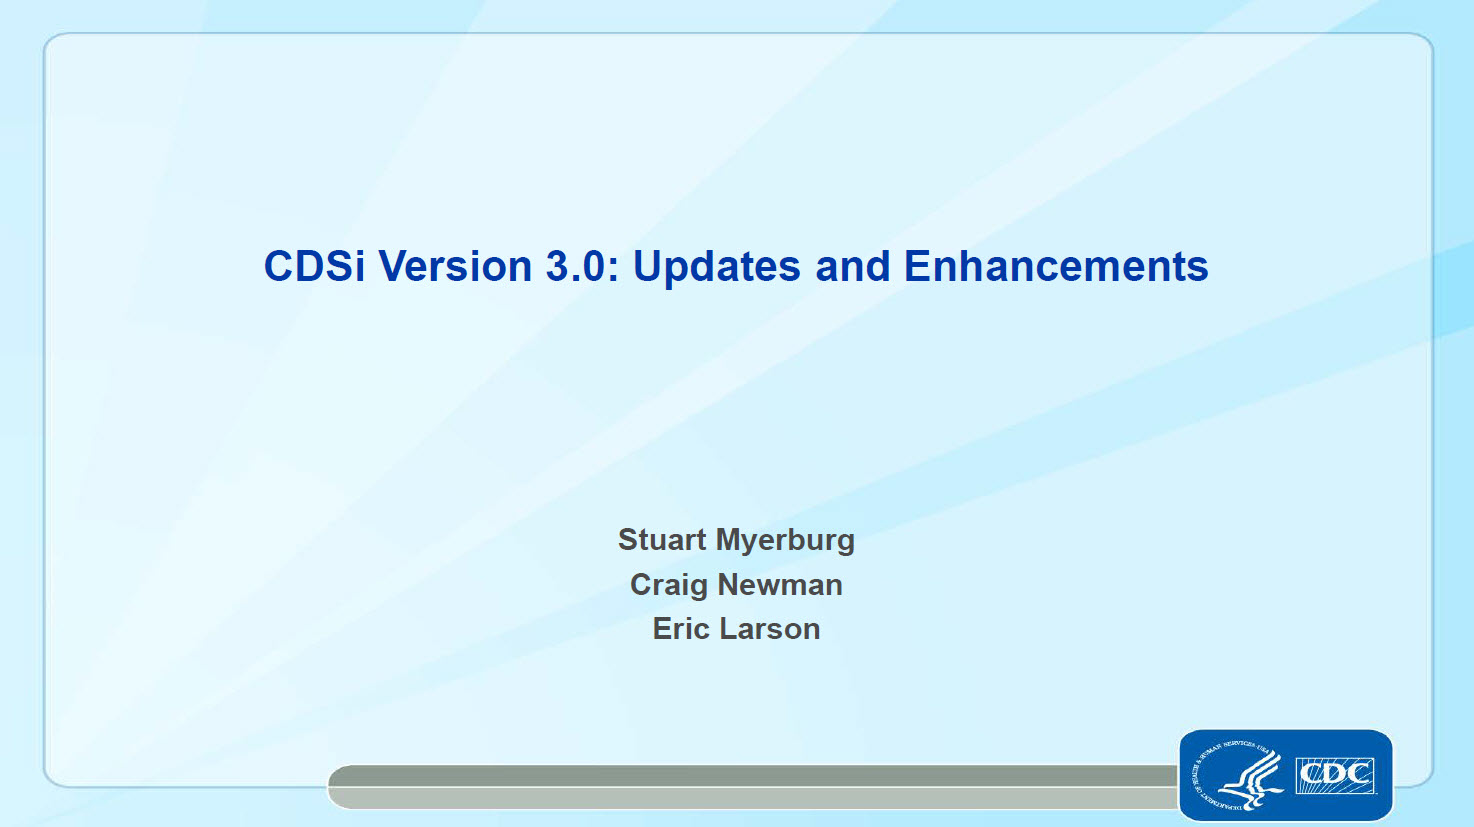 CDSi Version 3.0: Updates and Enhancements